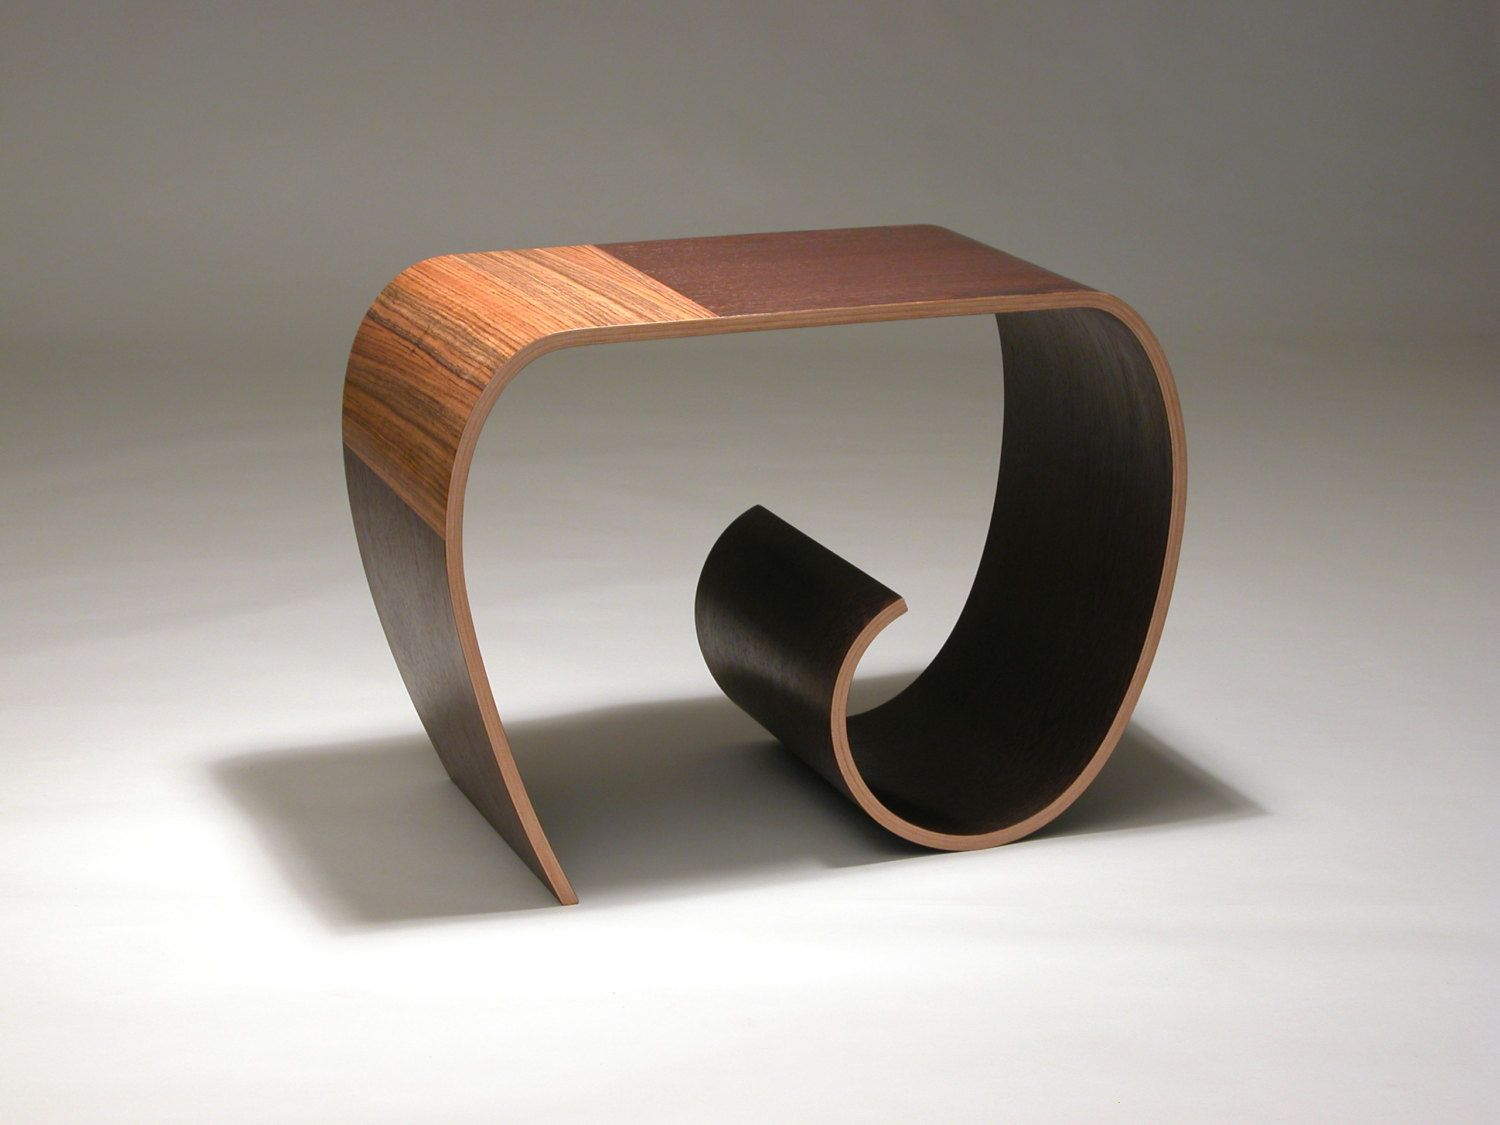 Sculptural Furniture Collection That Ties The Knot